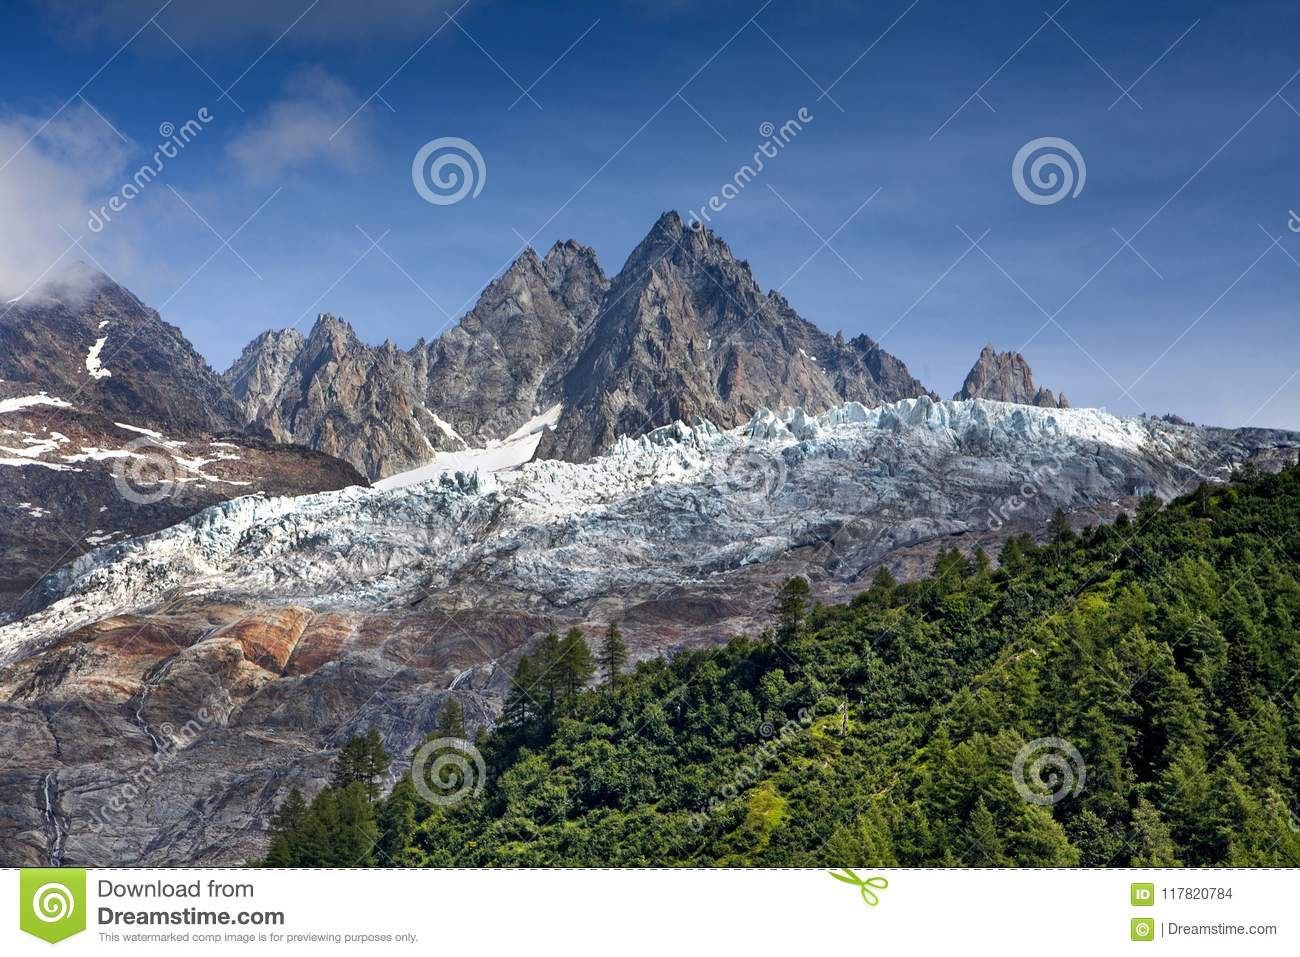 Snow in the mountains in summer.